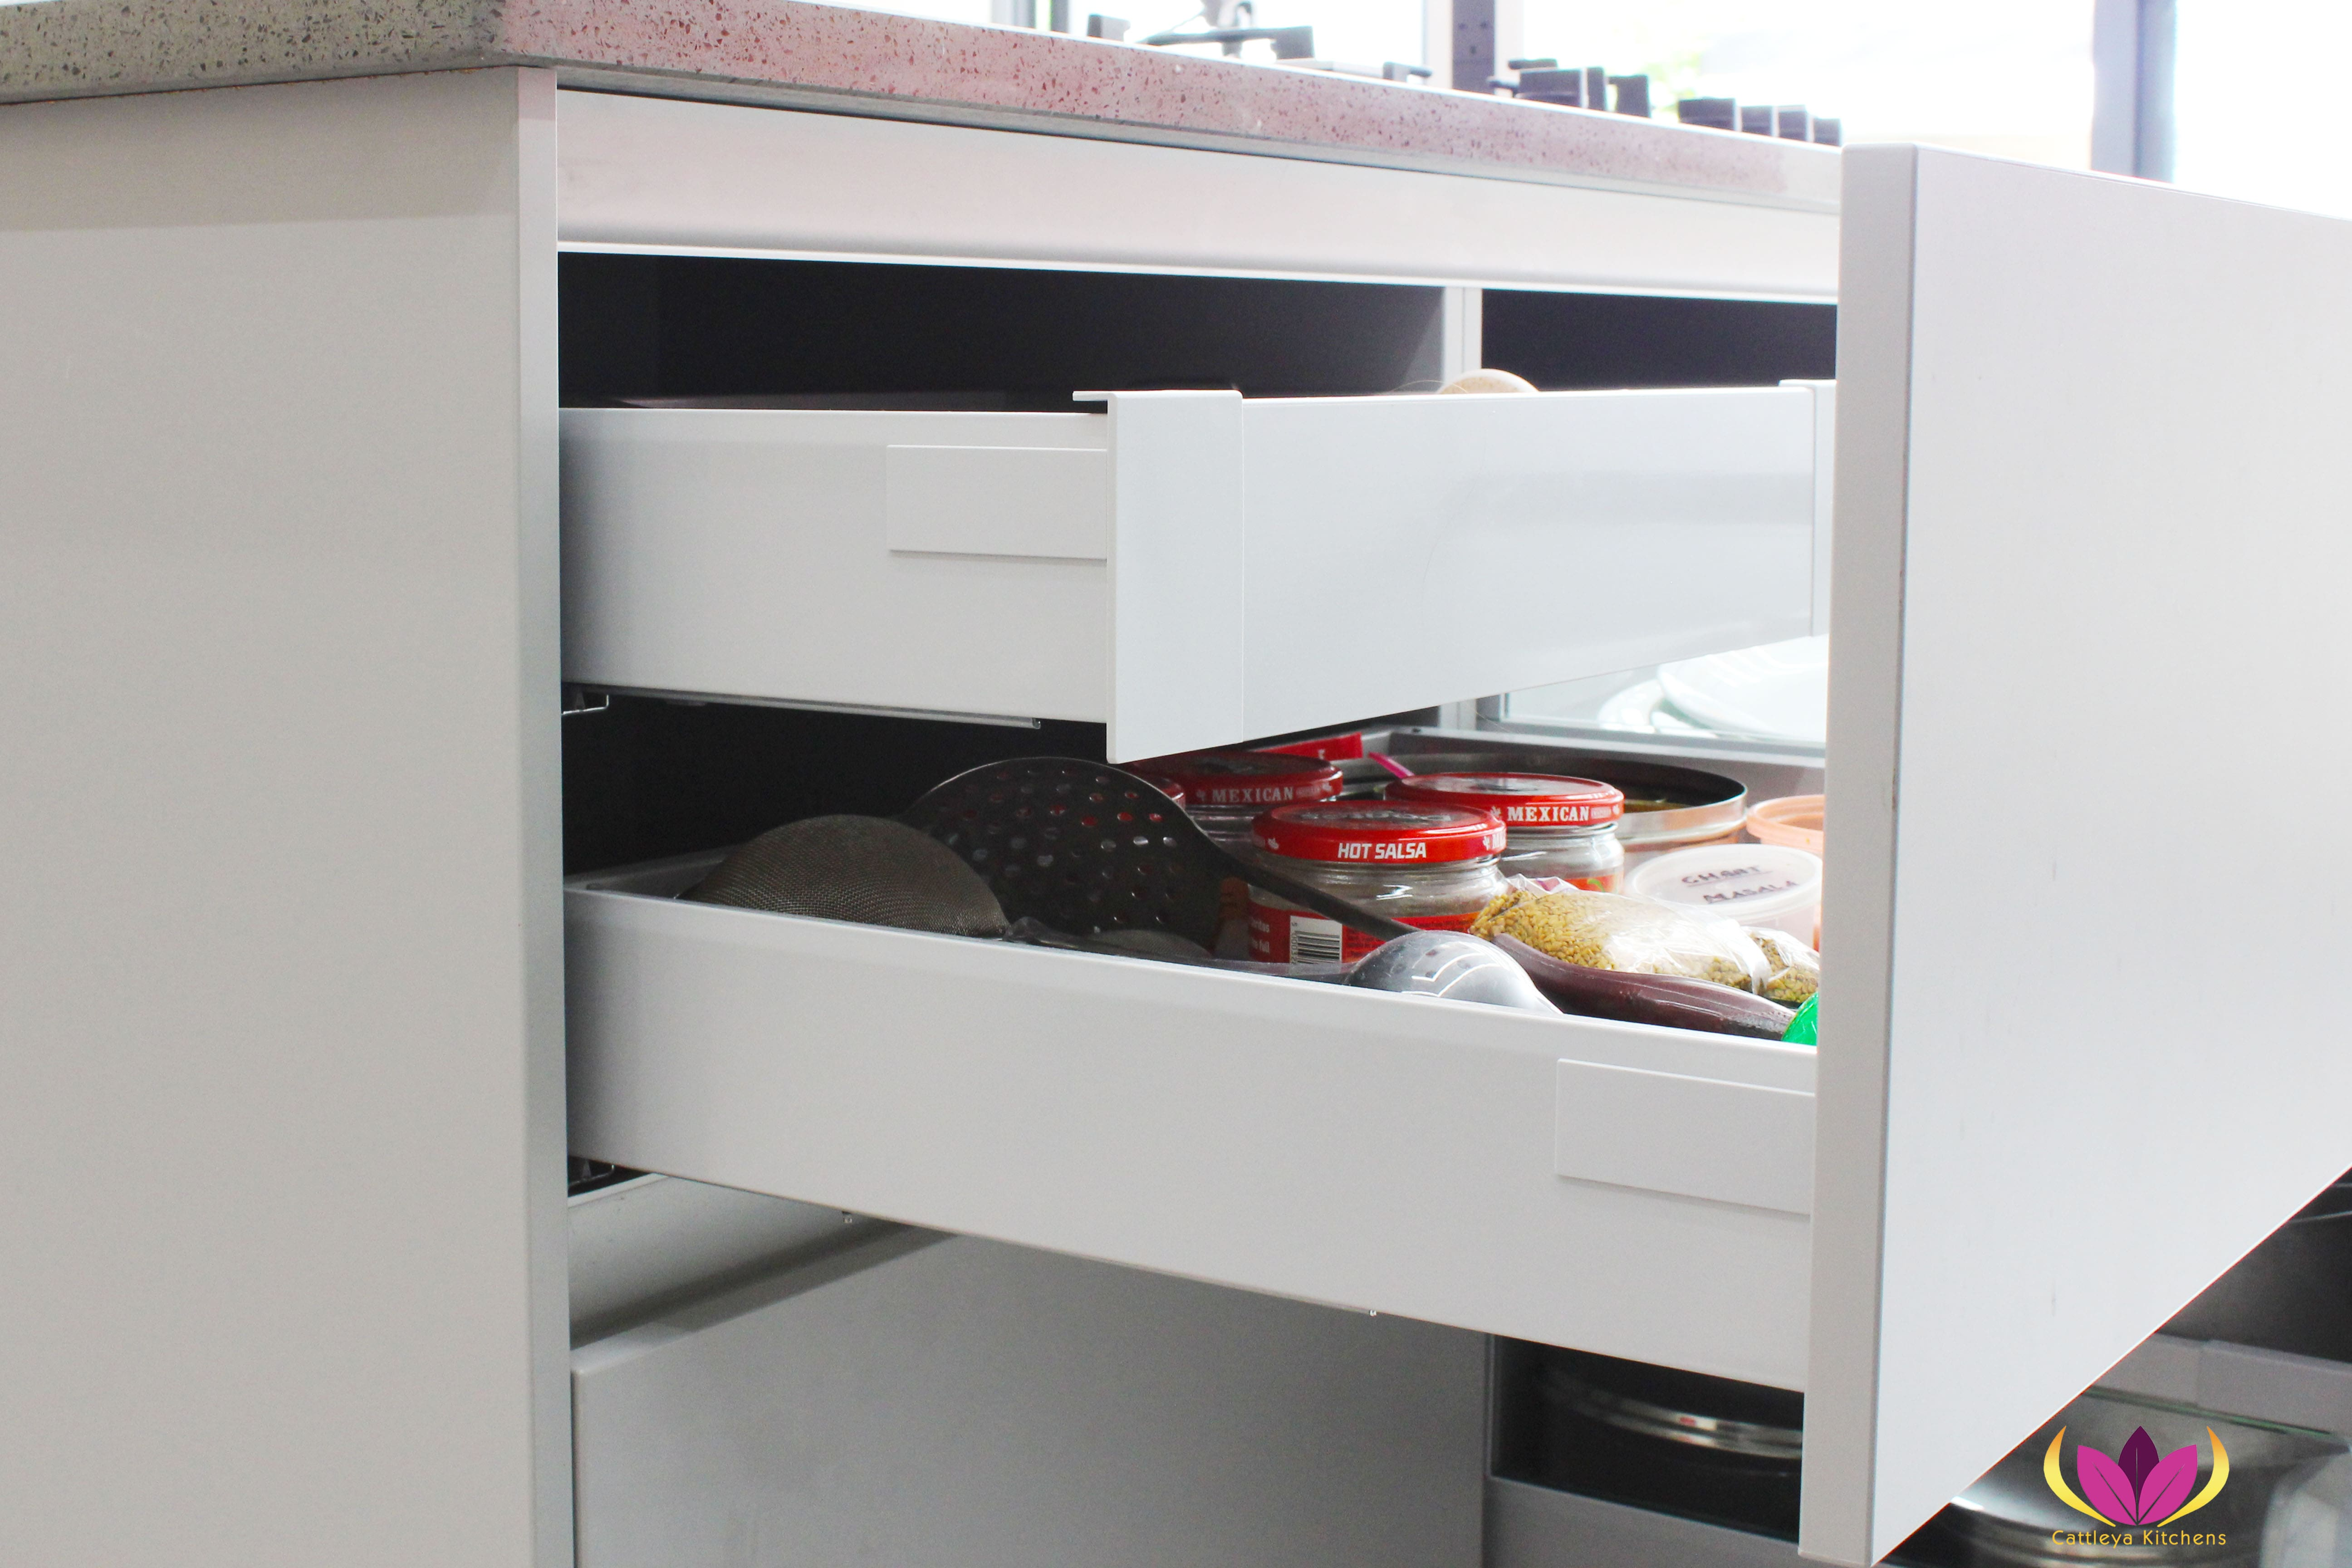 Gray drawers inside drawers Perivale Finished Kitchen Project